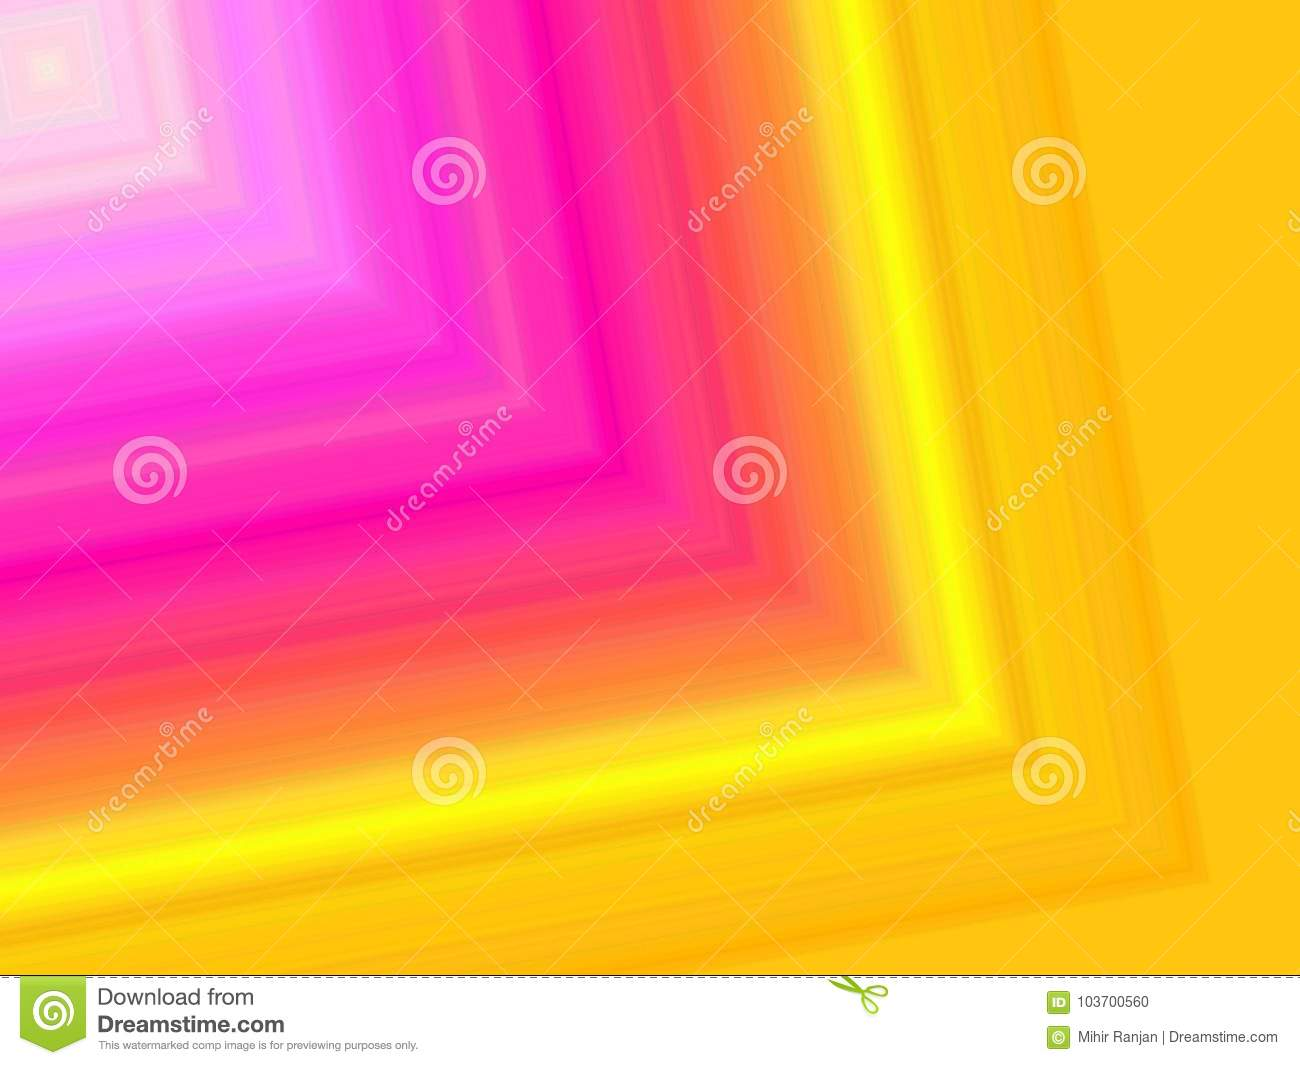 A digital art of vibrant color back ground